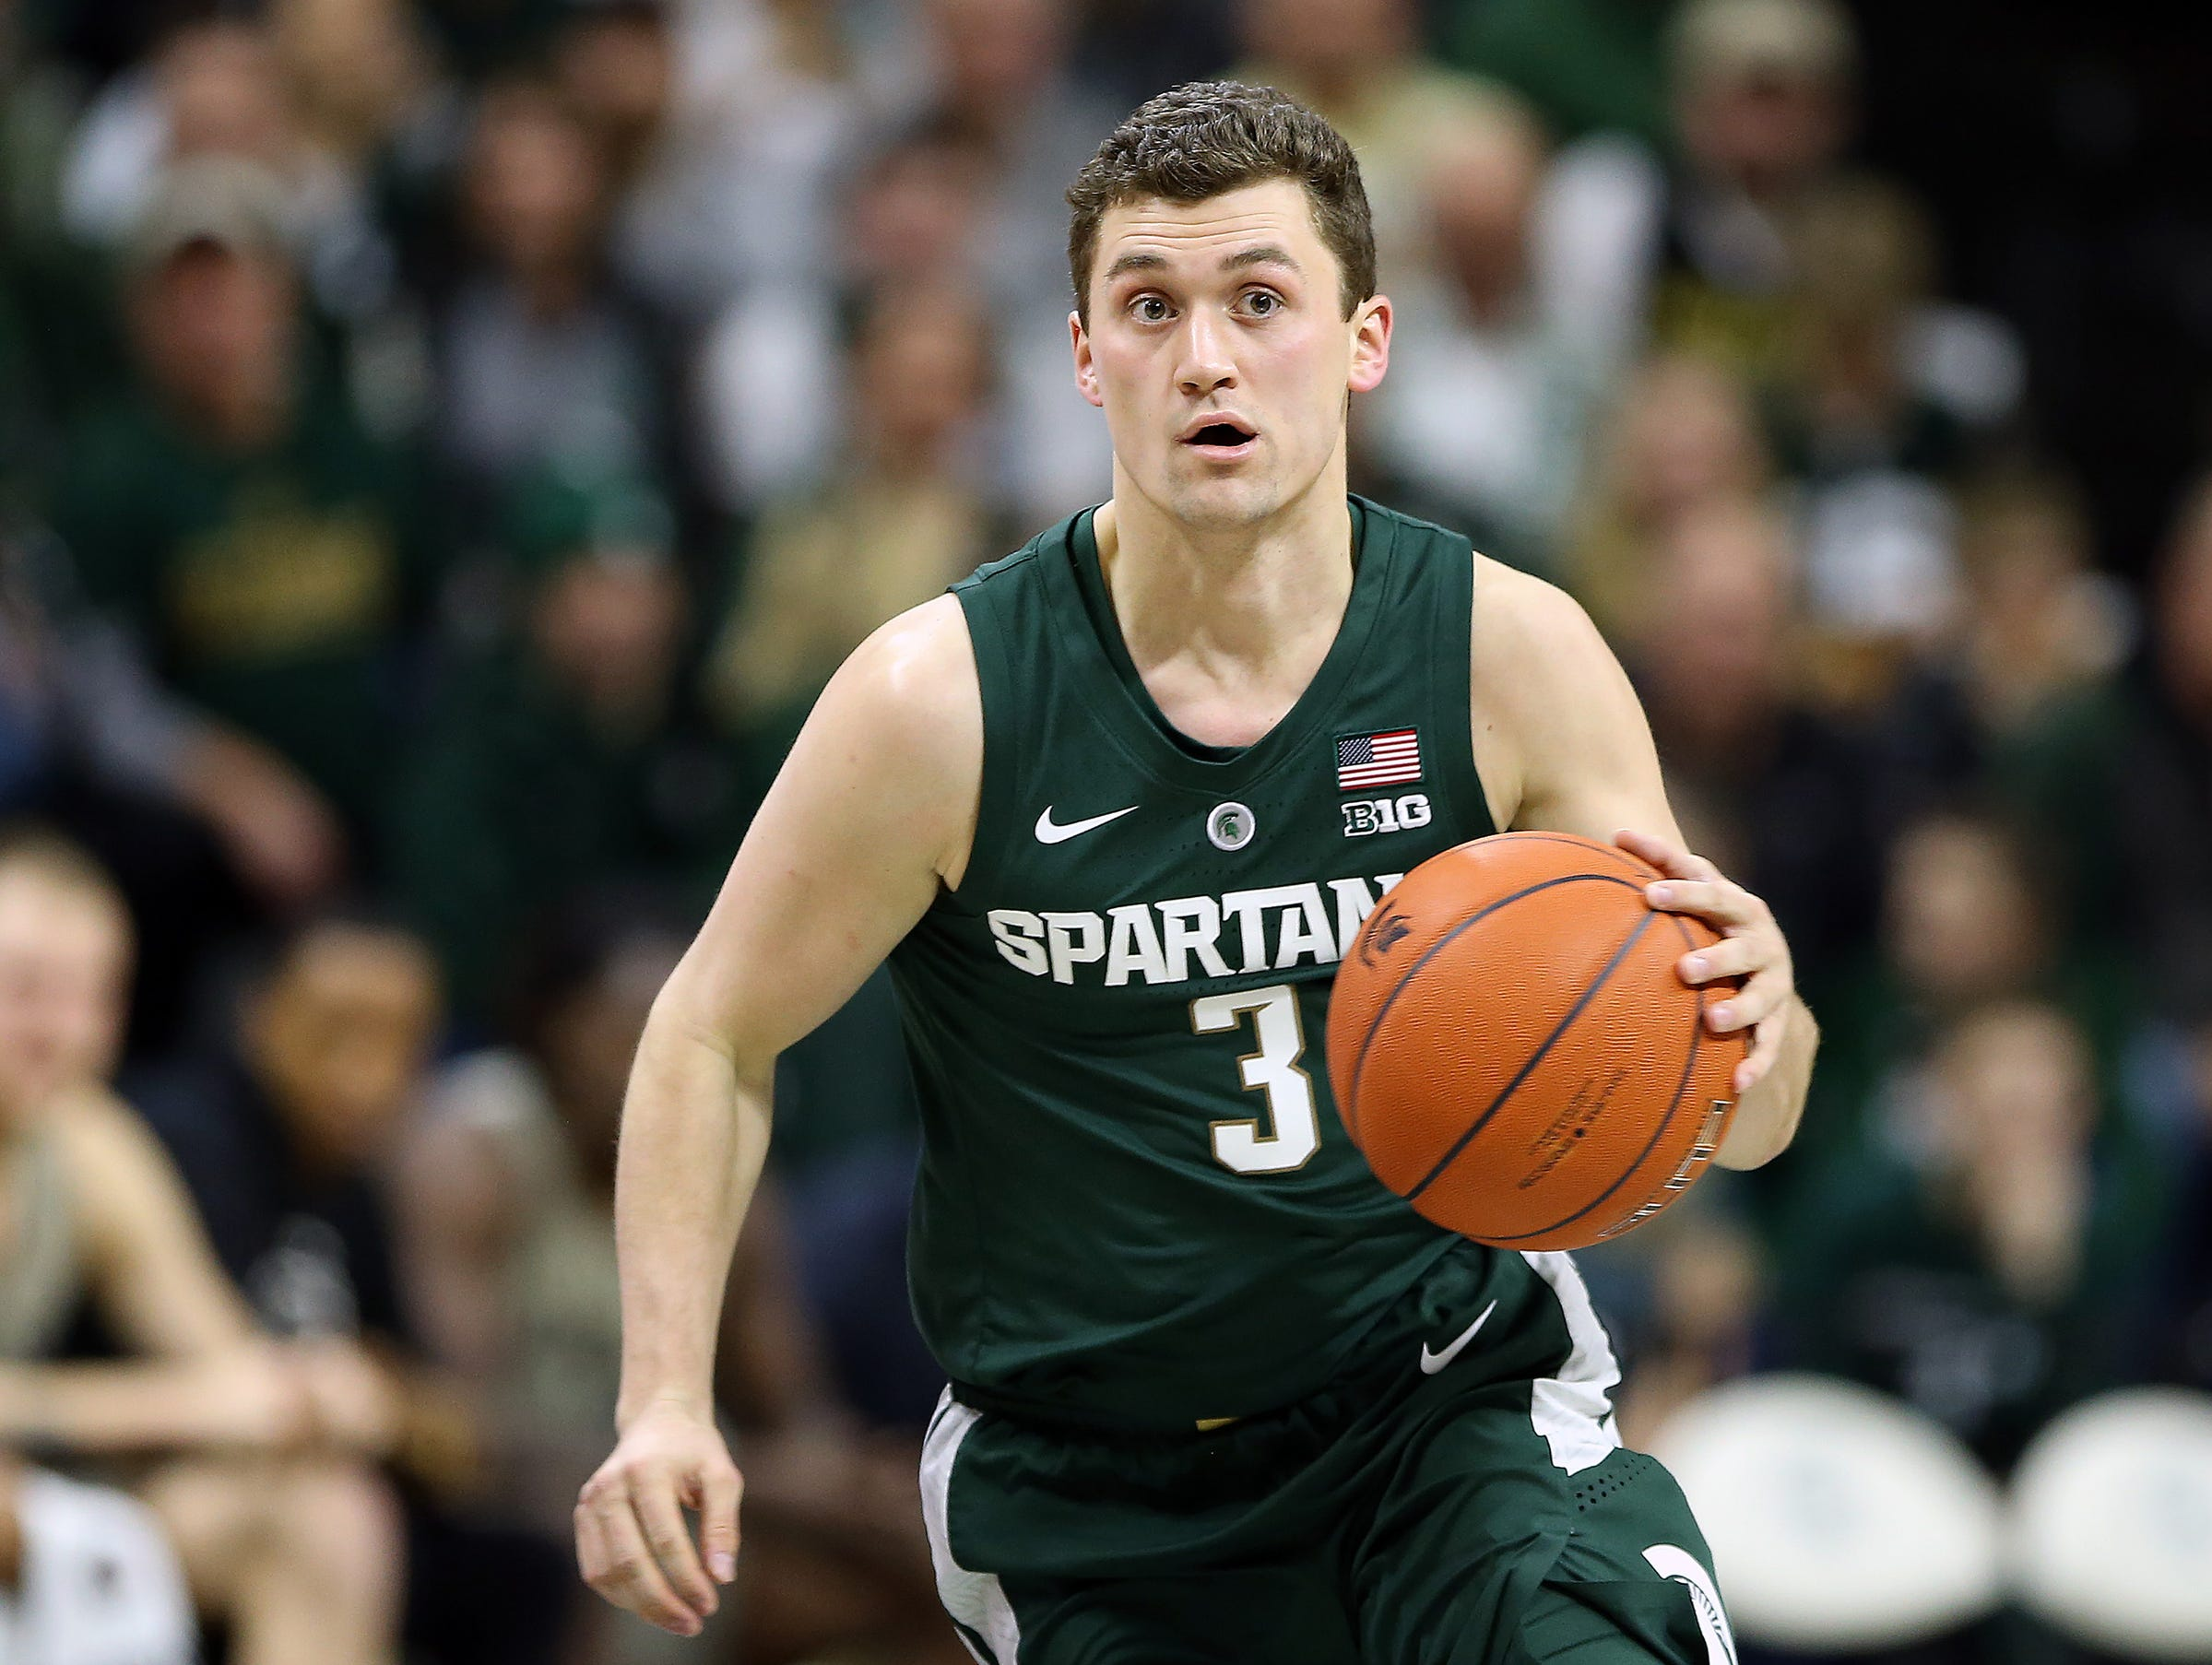 Michigan State Spartans guard Foster Loyer (3) brings the ball up court during the second half of a game against the Oakland Golden Grizzlies at the Breslin Center.